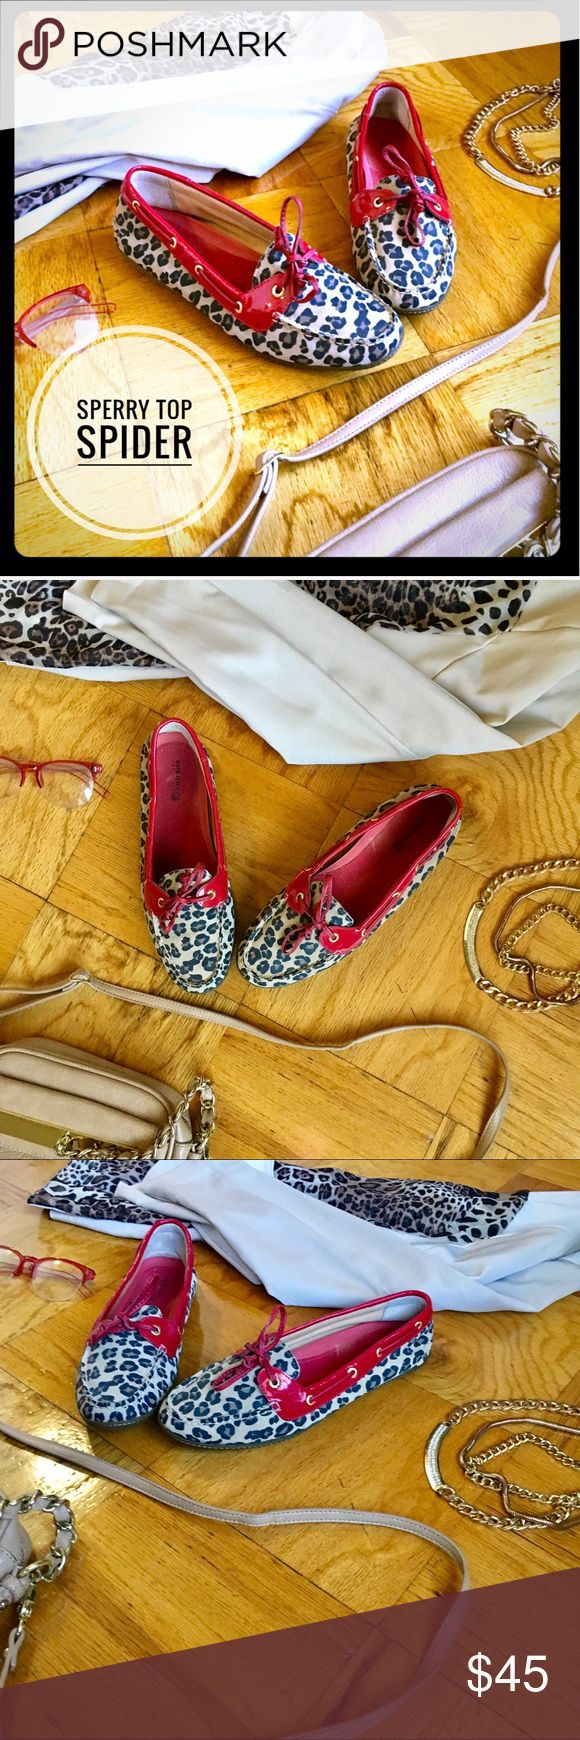 SPERRY RED/CHEETAH PRINT LEATHER BOAT SHOES SZ 9.5 PREOWNED‼️STILL IN VERY GOOD CONDITION💋SPERRY TOP SPIDER RED AND CHEETAH LEOPARD PRINT LEATHER BOAT SHOES WITH GOLD ACCENTS🚨WORN WITH LOVE, SOLES ARE LIKE NEW JUST LOOKING FOR A NEW HOME🤗GRAB THESE CUTIES TODAY OR BUNDLE FOR A GREAT DEAL💗 💋SIZE 9.5 💋TAN, BLACK, BROWN PRINT 💋RED LEATHER LINING AND SHOE STRINGS Sperry Top-Sider Shoes Flats & Loafers